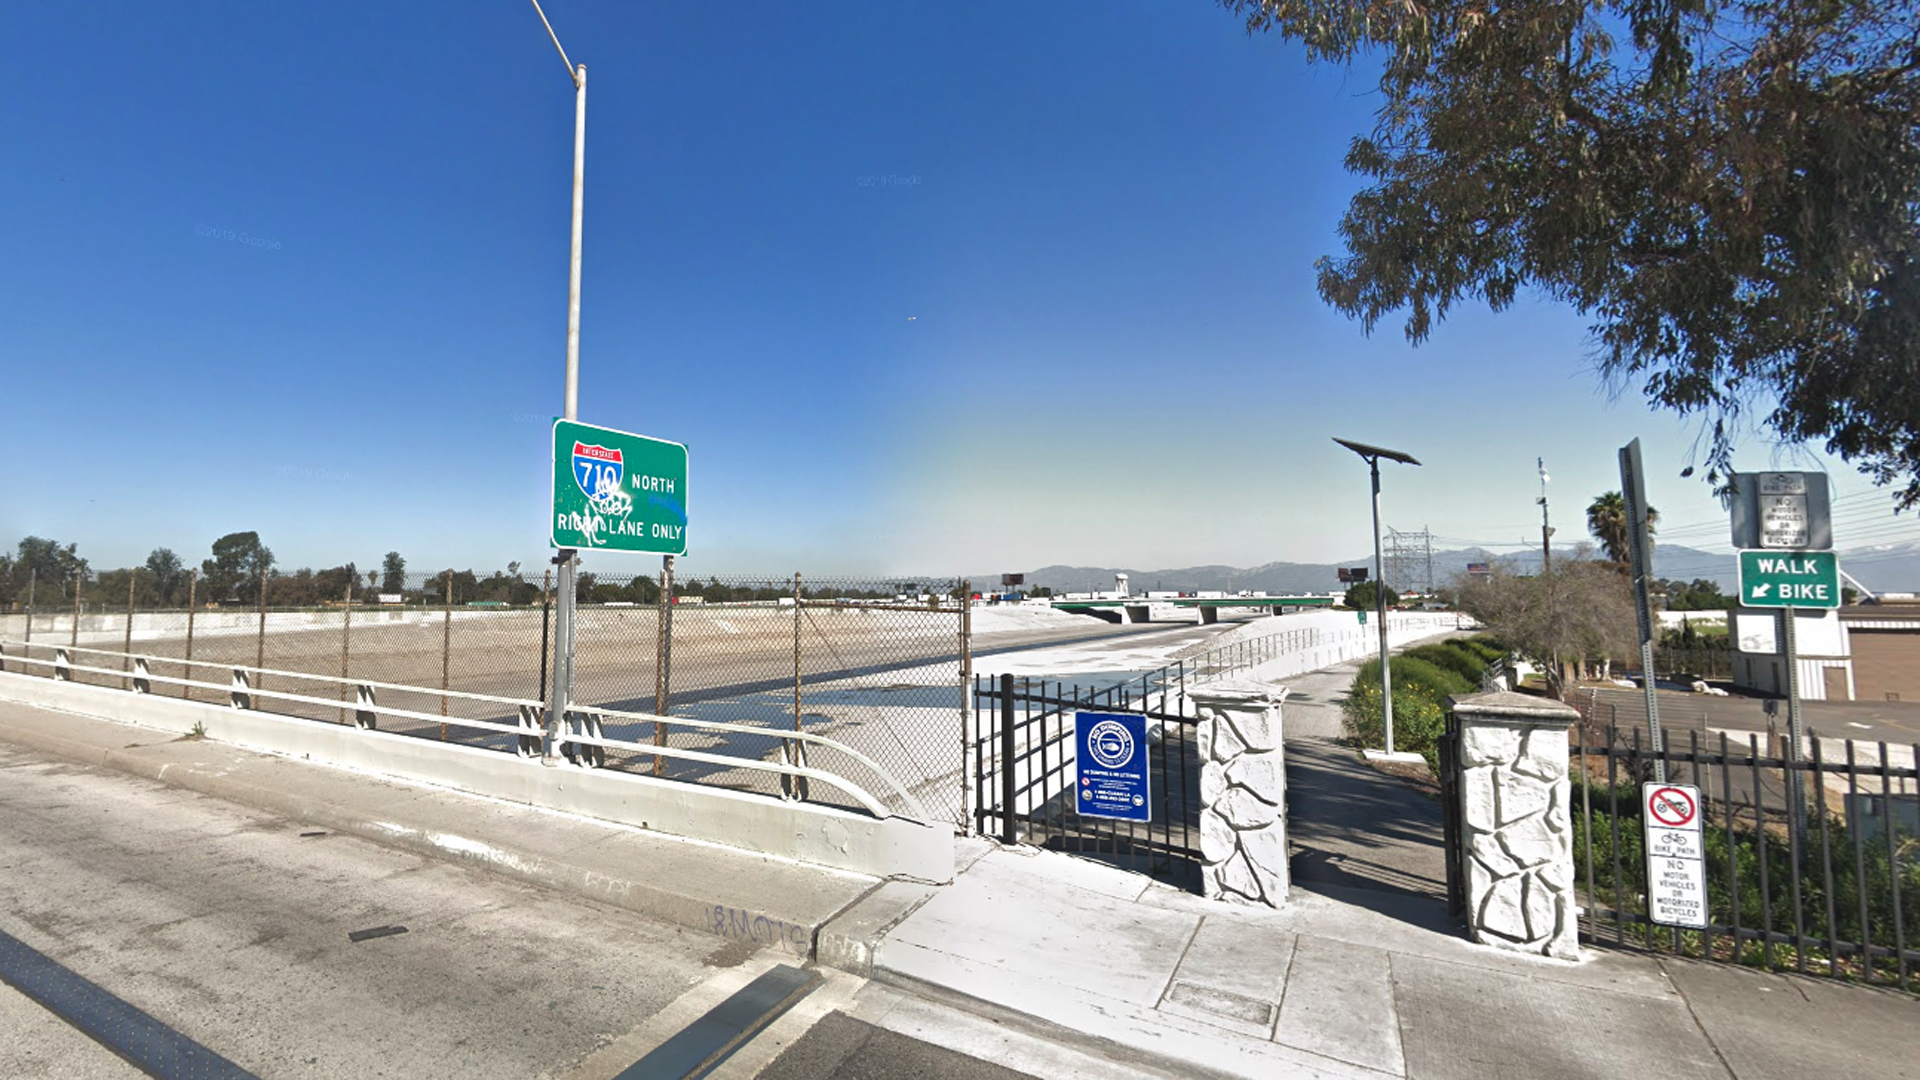 The Los Angeles River in South Gate is seen looking north from Imperial Highway in a Google Maps Street View image.